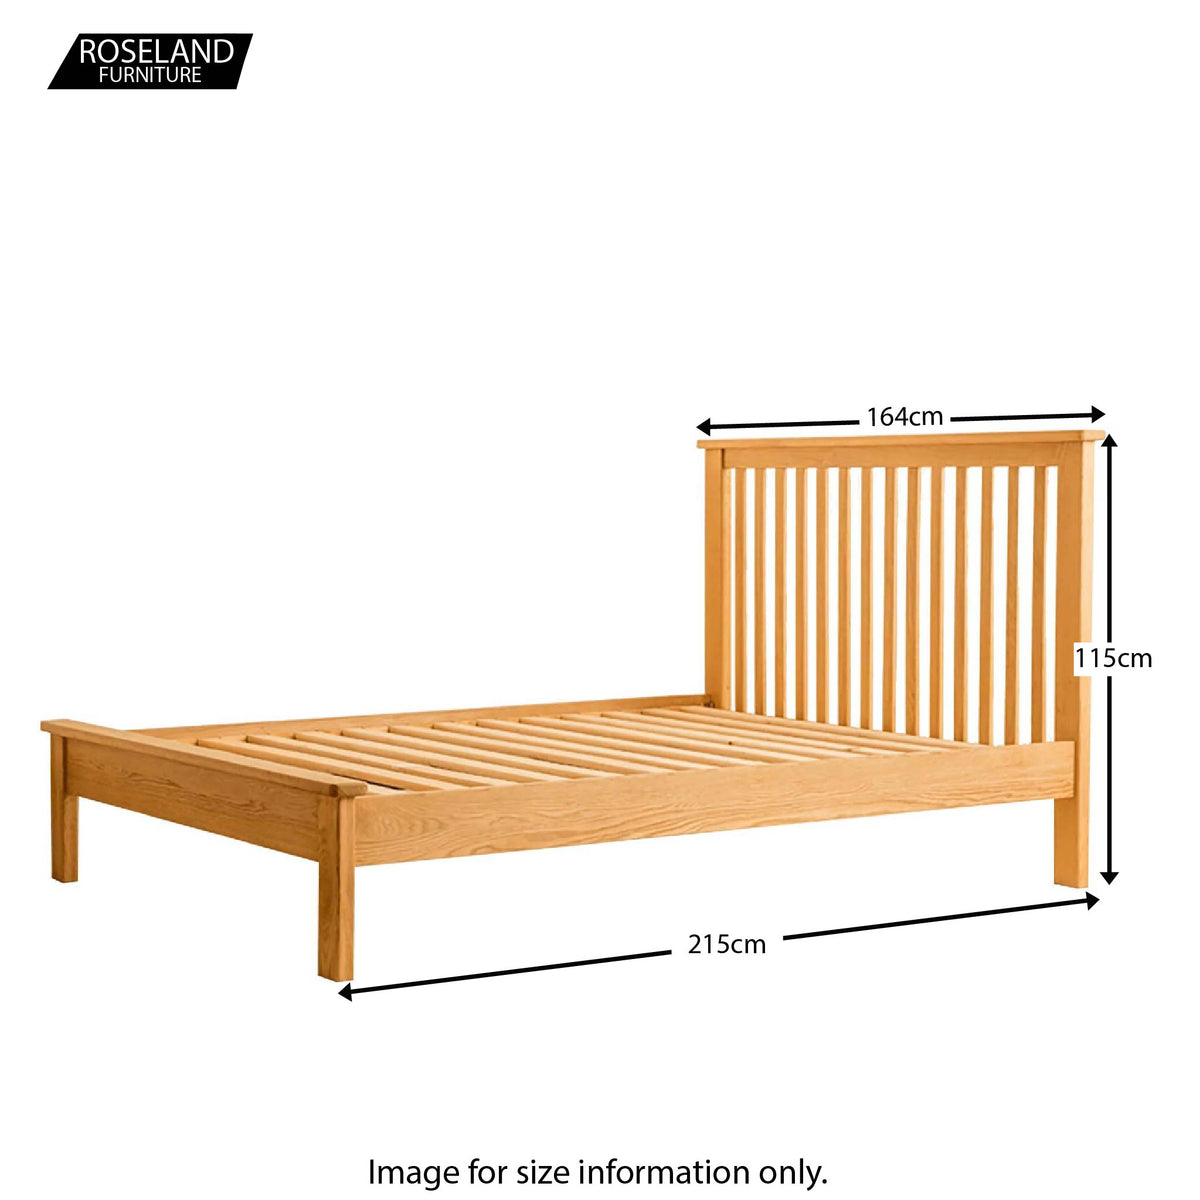 Roseland Oak 5ft Bed - Size Guide